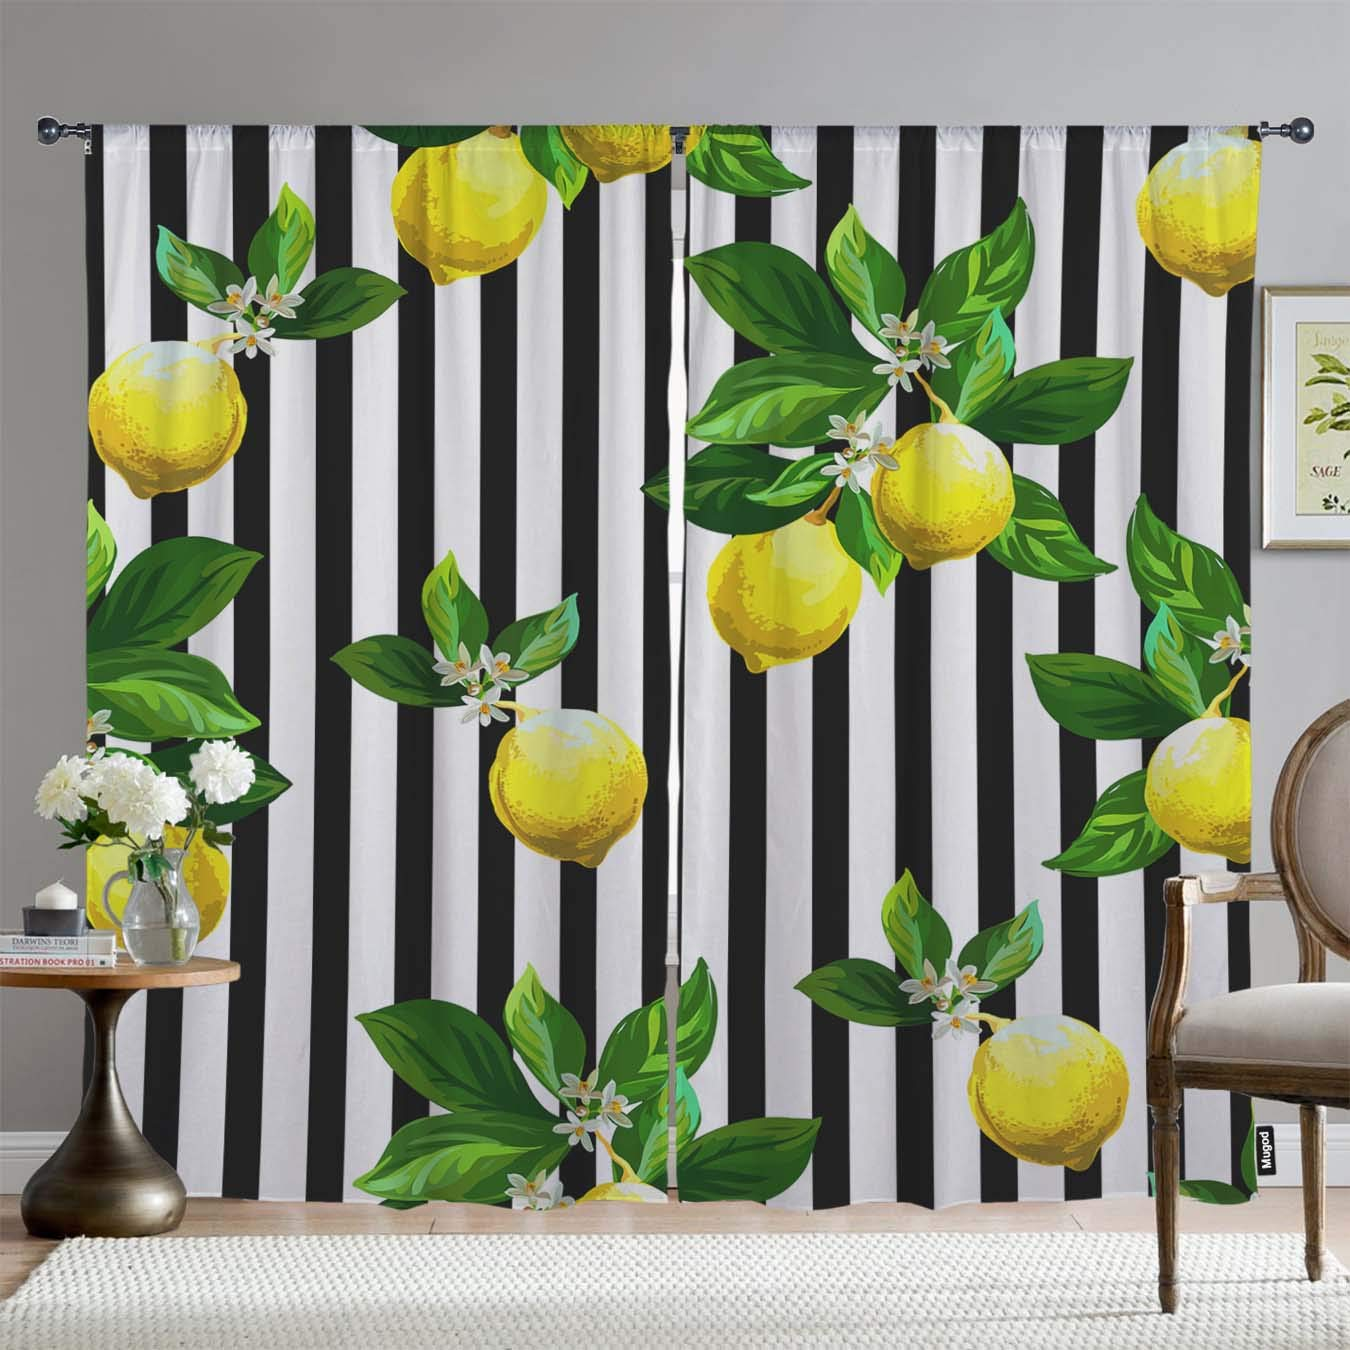 """Mugod Lemons Blackout Window Curtains Fresh Citrus with Green Leaves Pattern on Black and White Striped Background Room Darkening Drapes Curtains 2 Panels for Bedroom Living Room & Kitchen, 108""""x 96"""""""